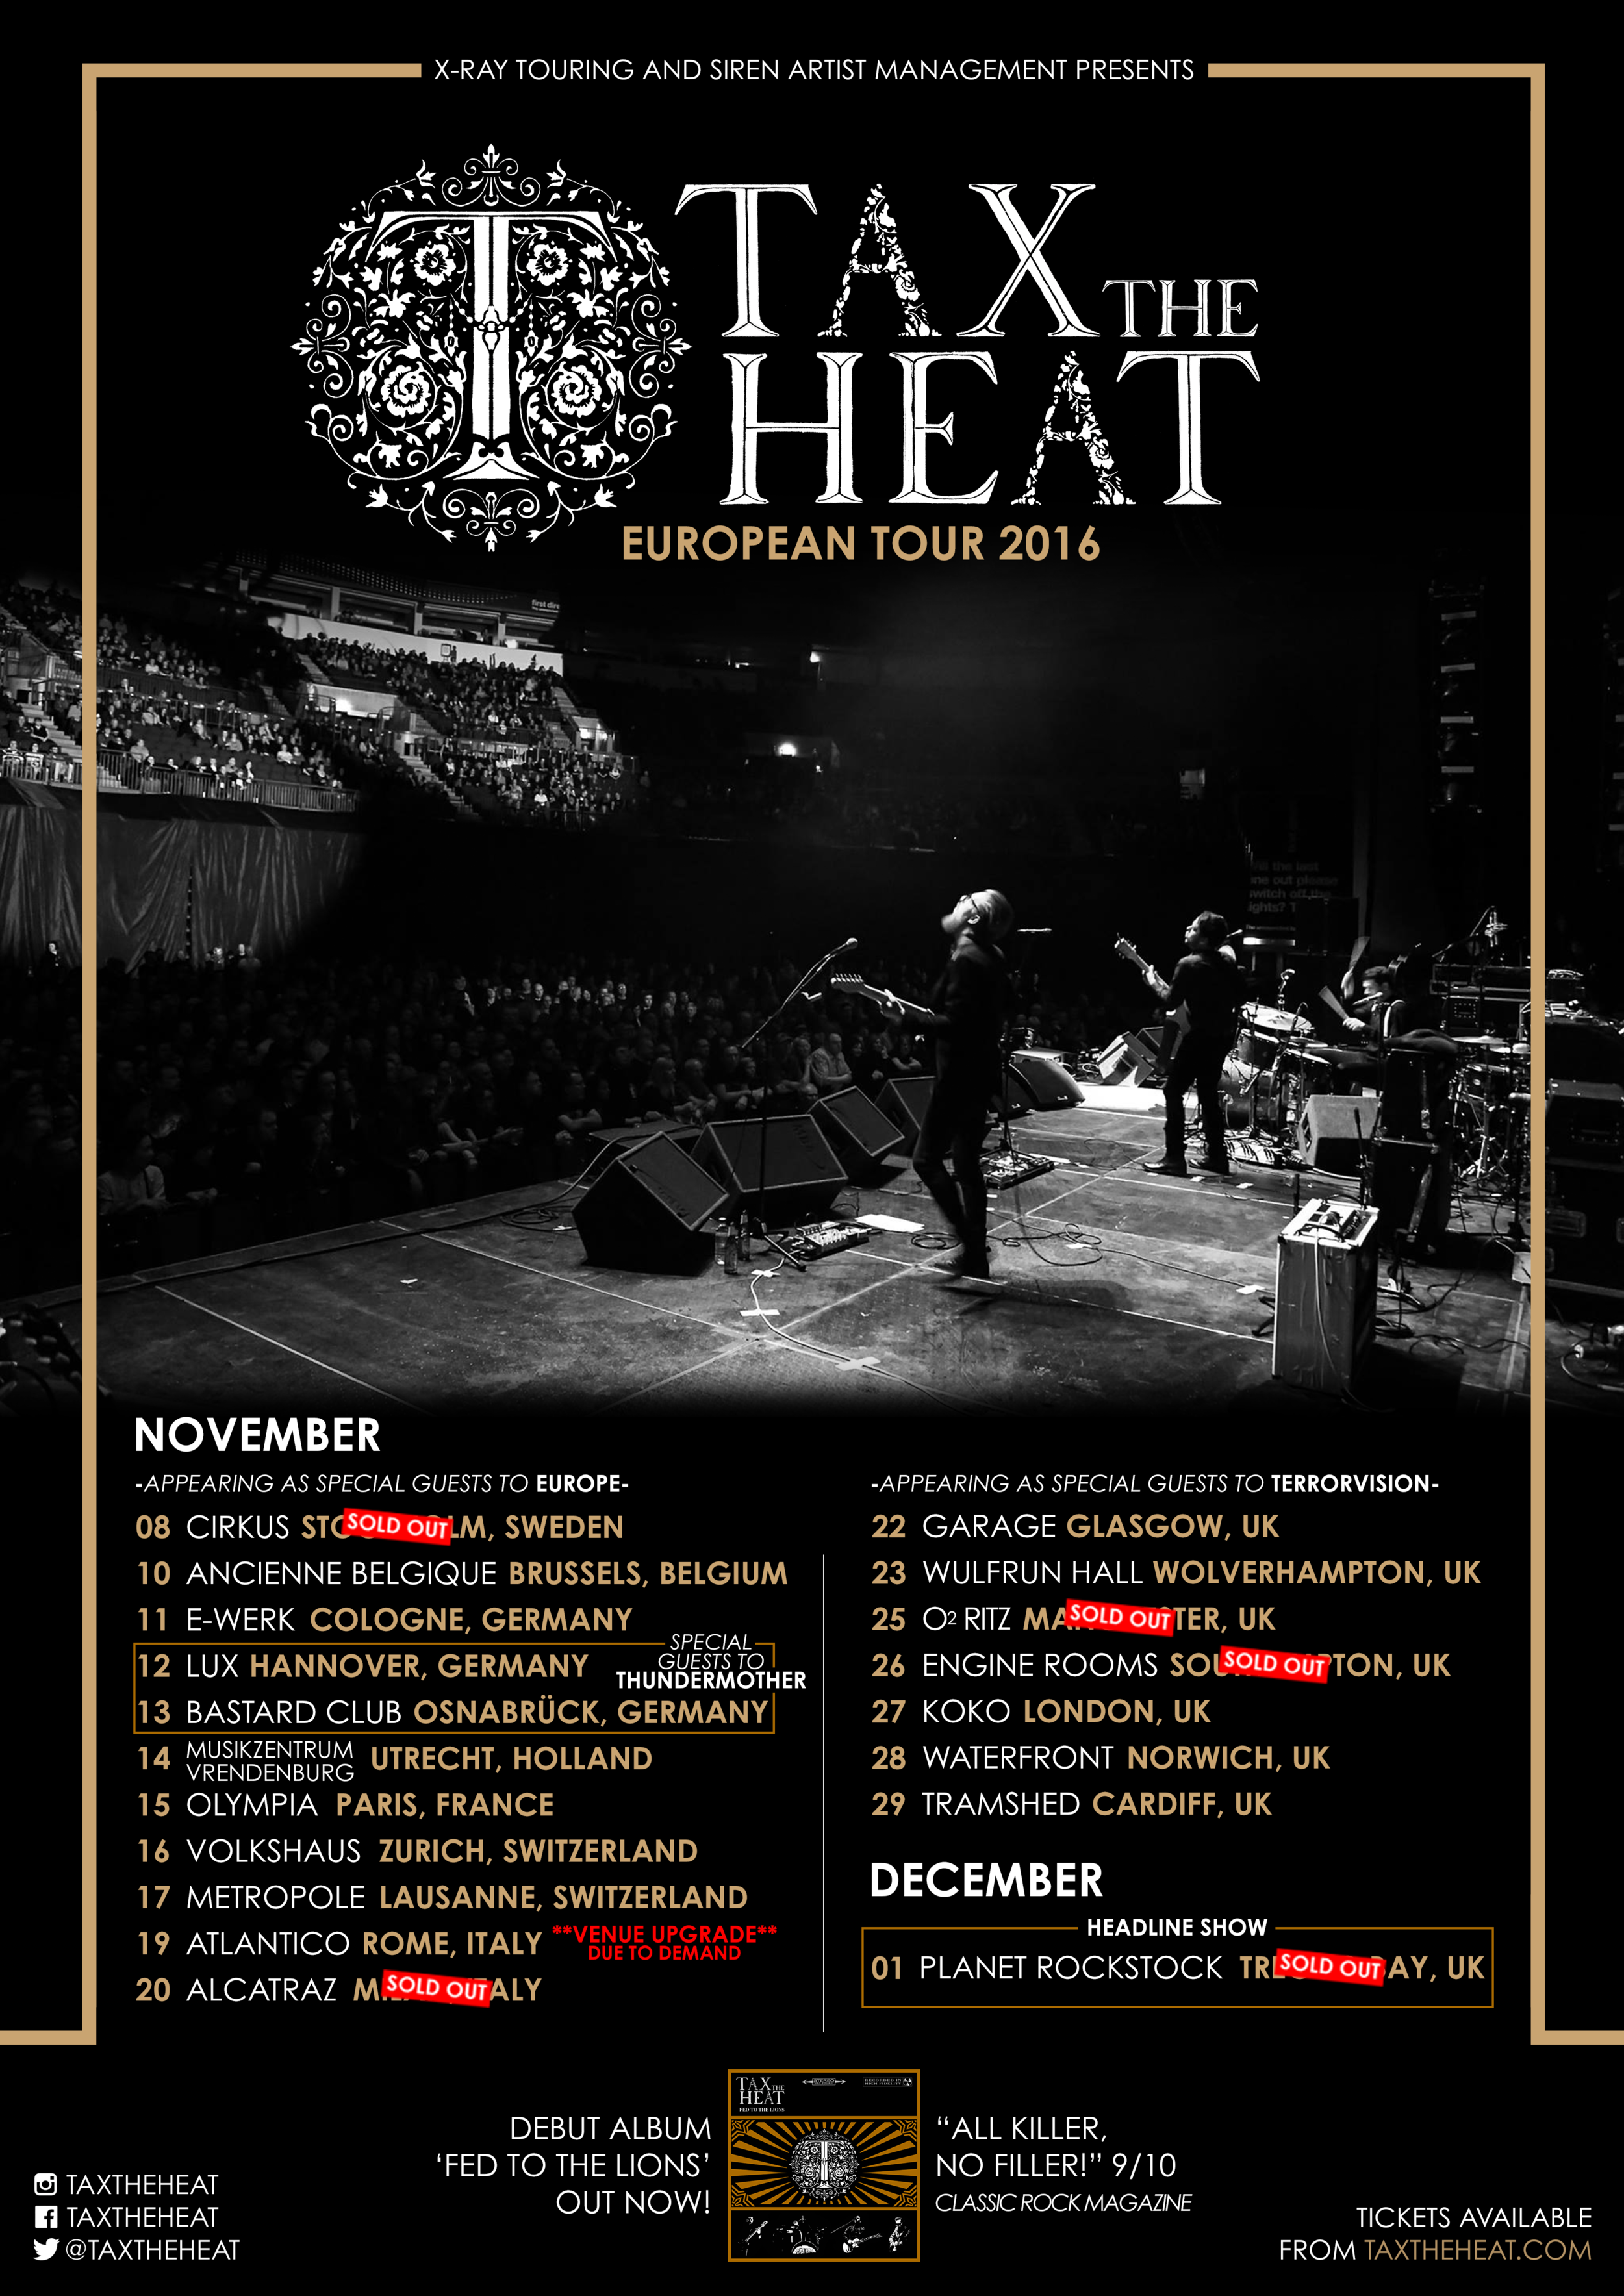 Tax-The-Heat-European-Tour-2016-Update